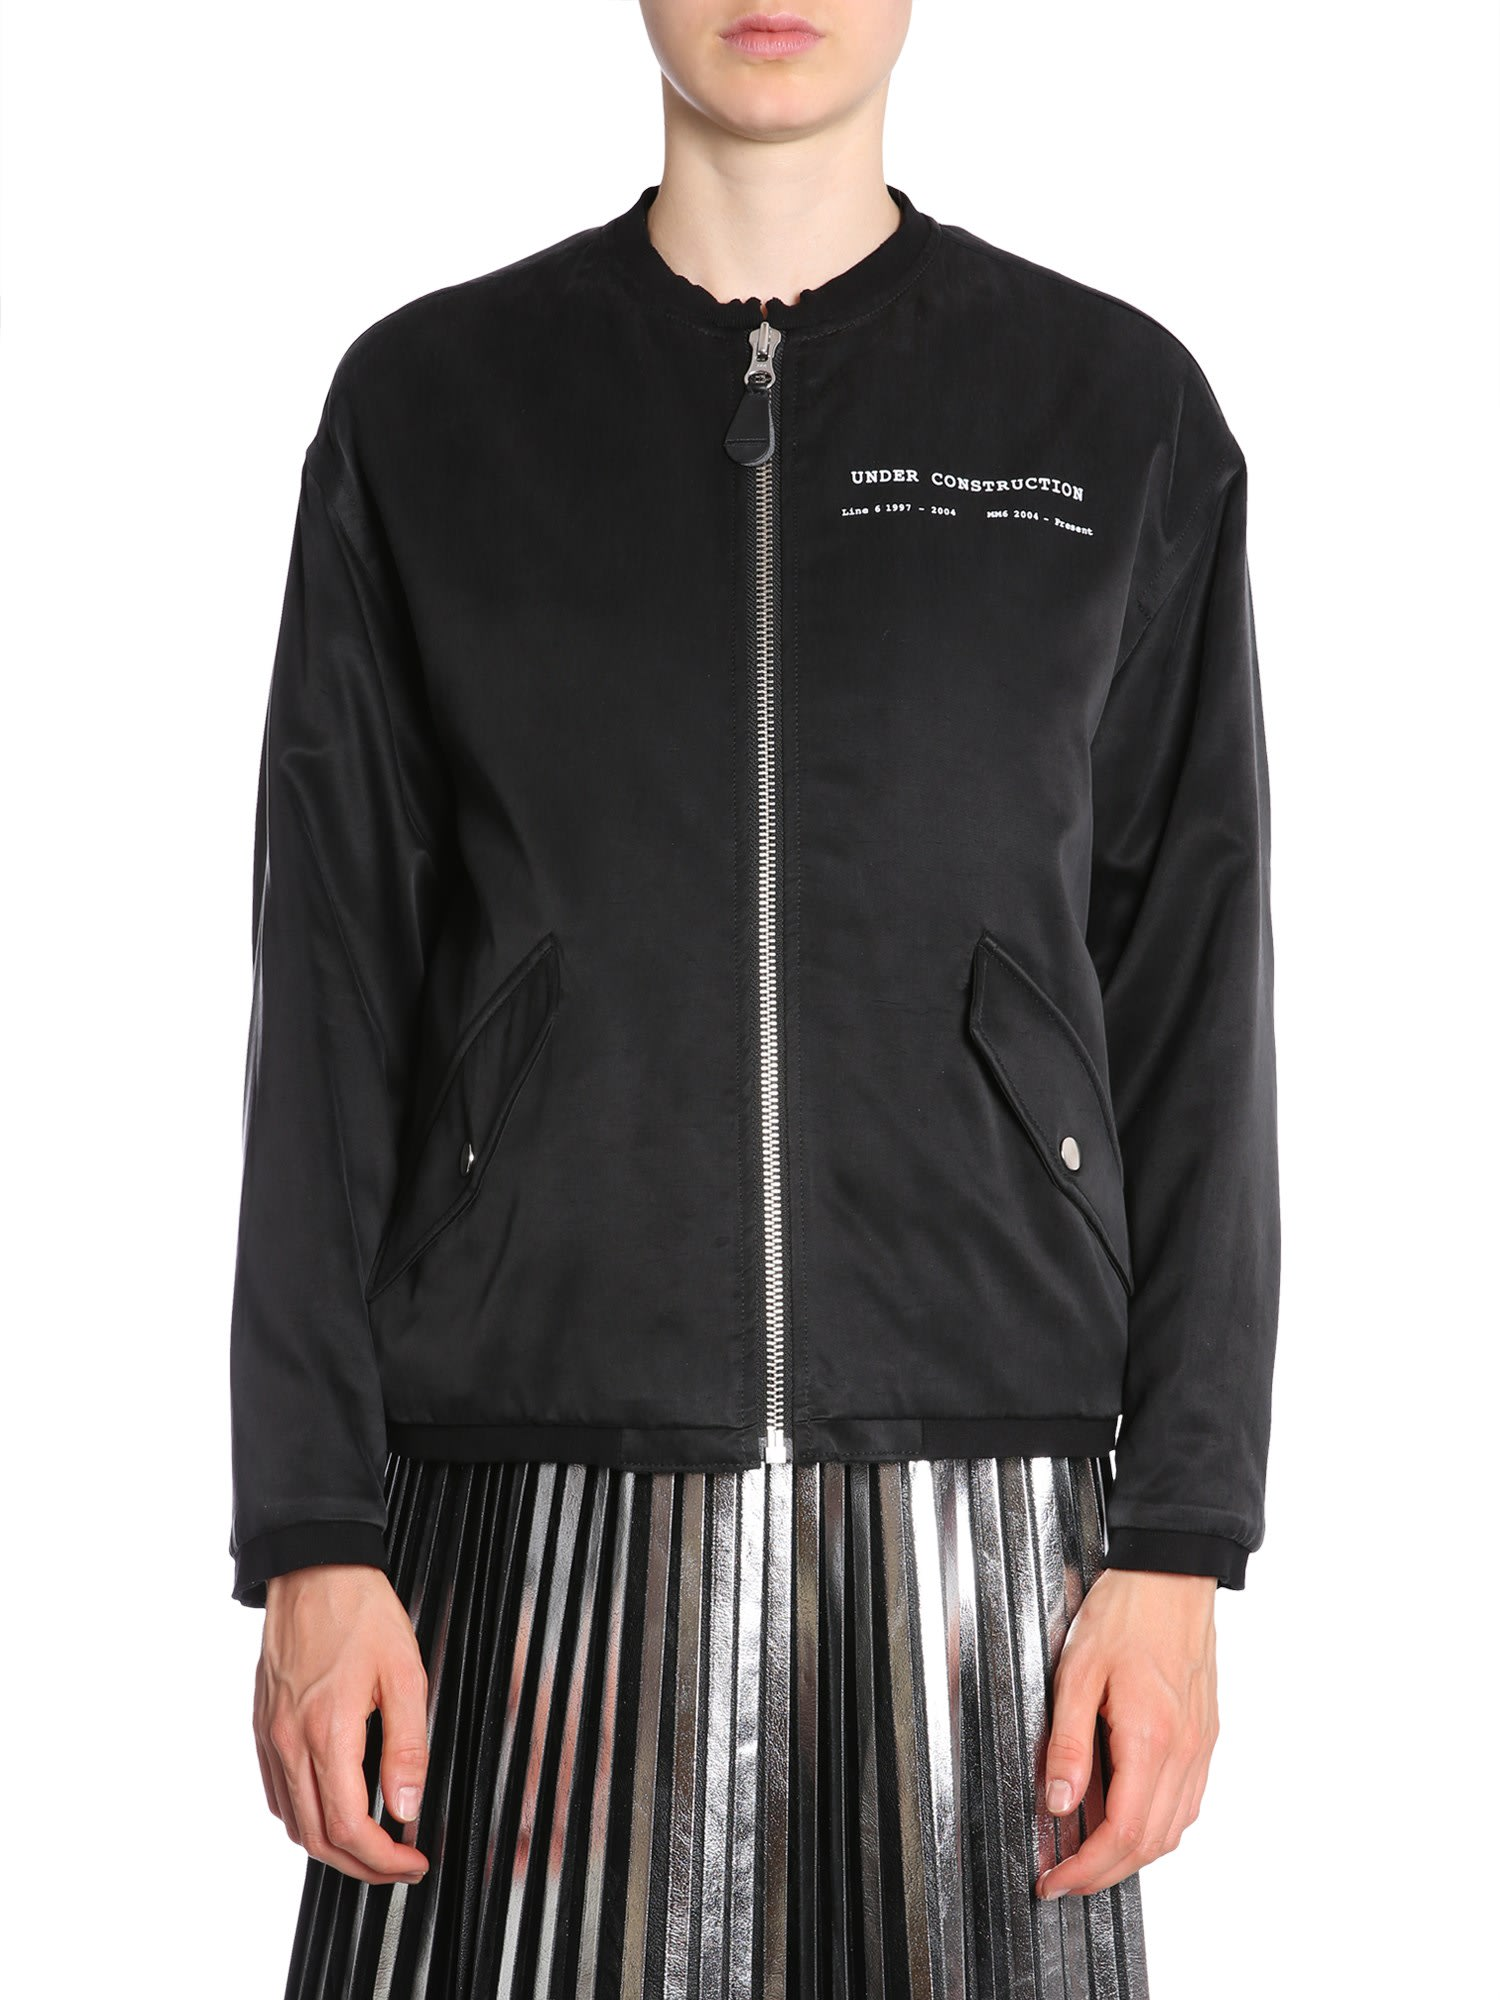 Photo of  MM6 Maison Margiela Heritage Bomber Jacket- shop MM6 Maison Margiela jackets online sales